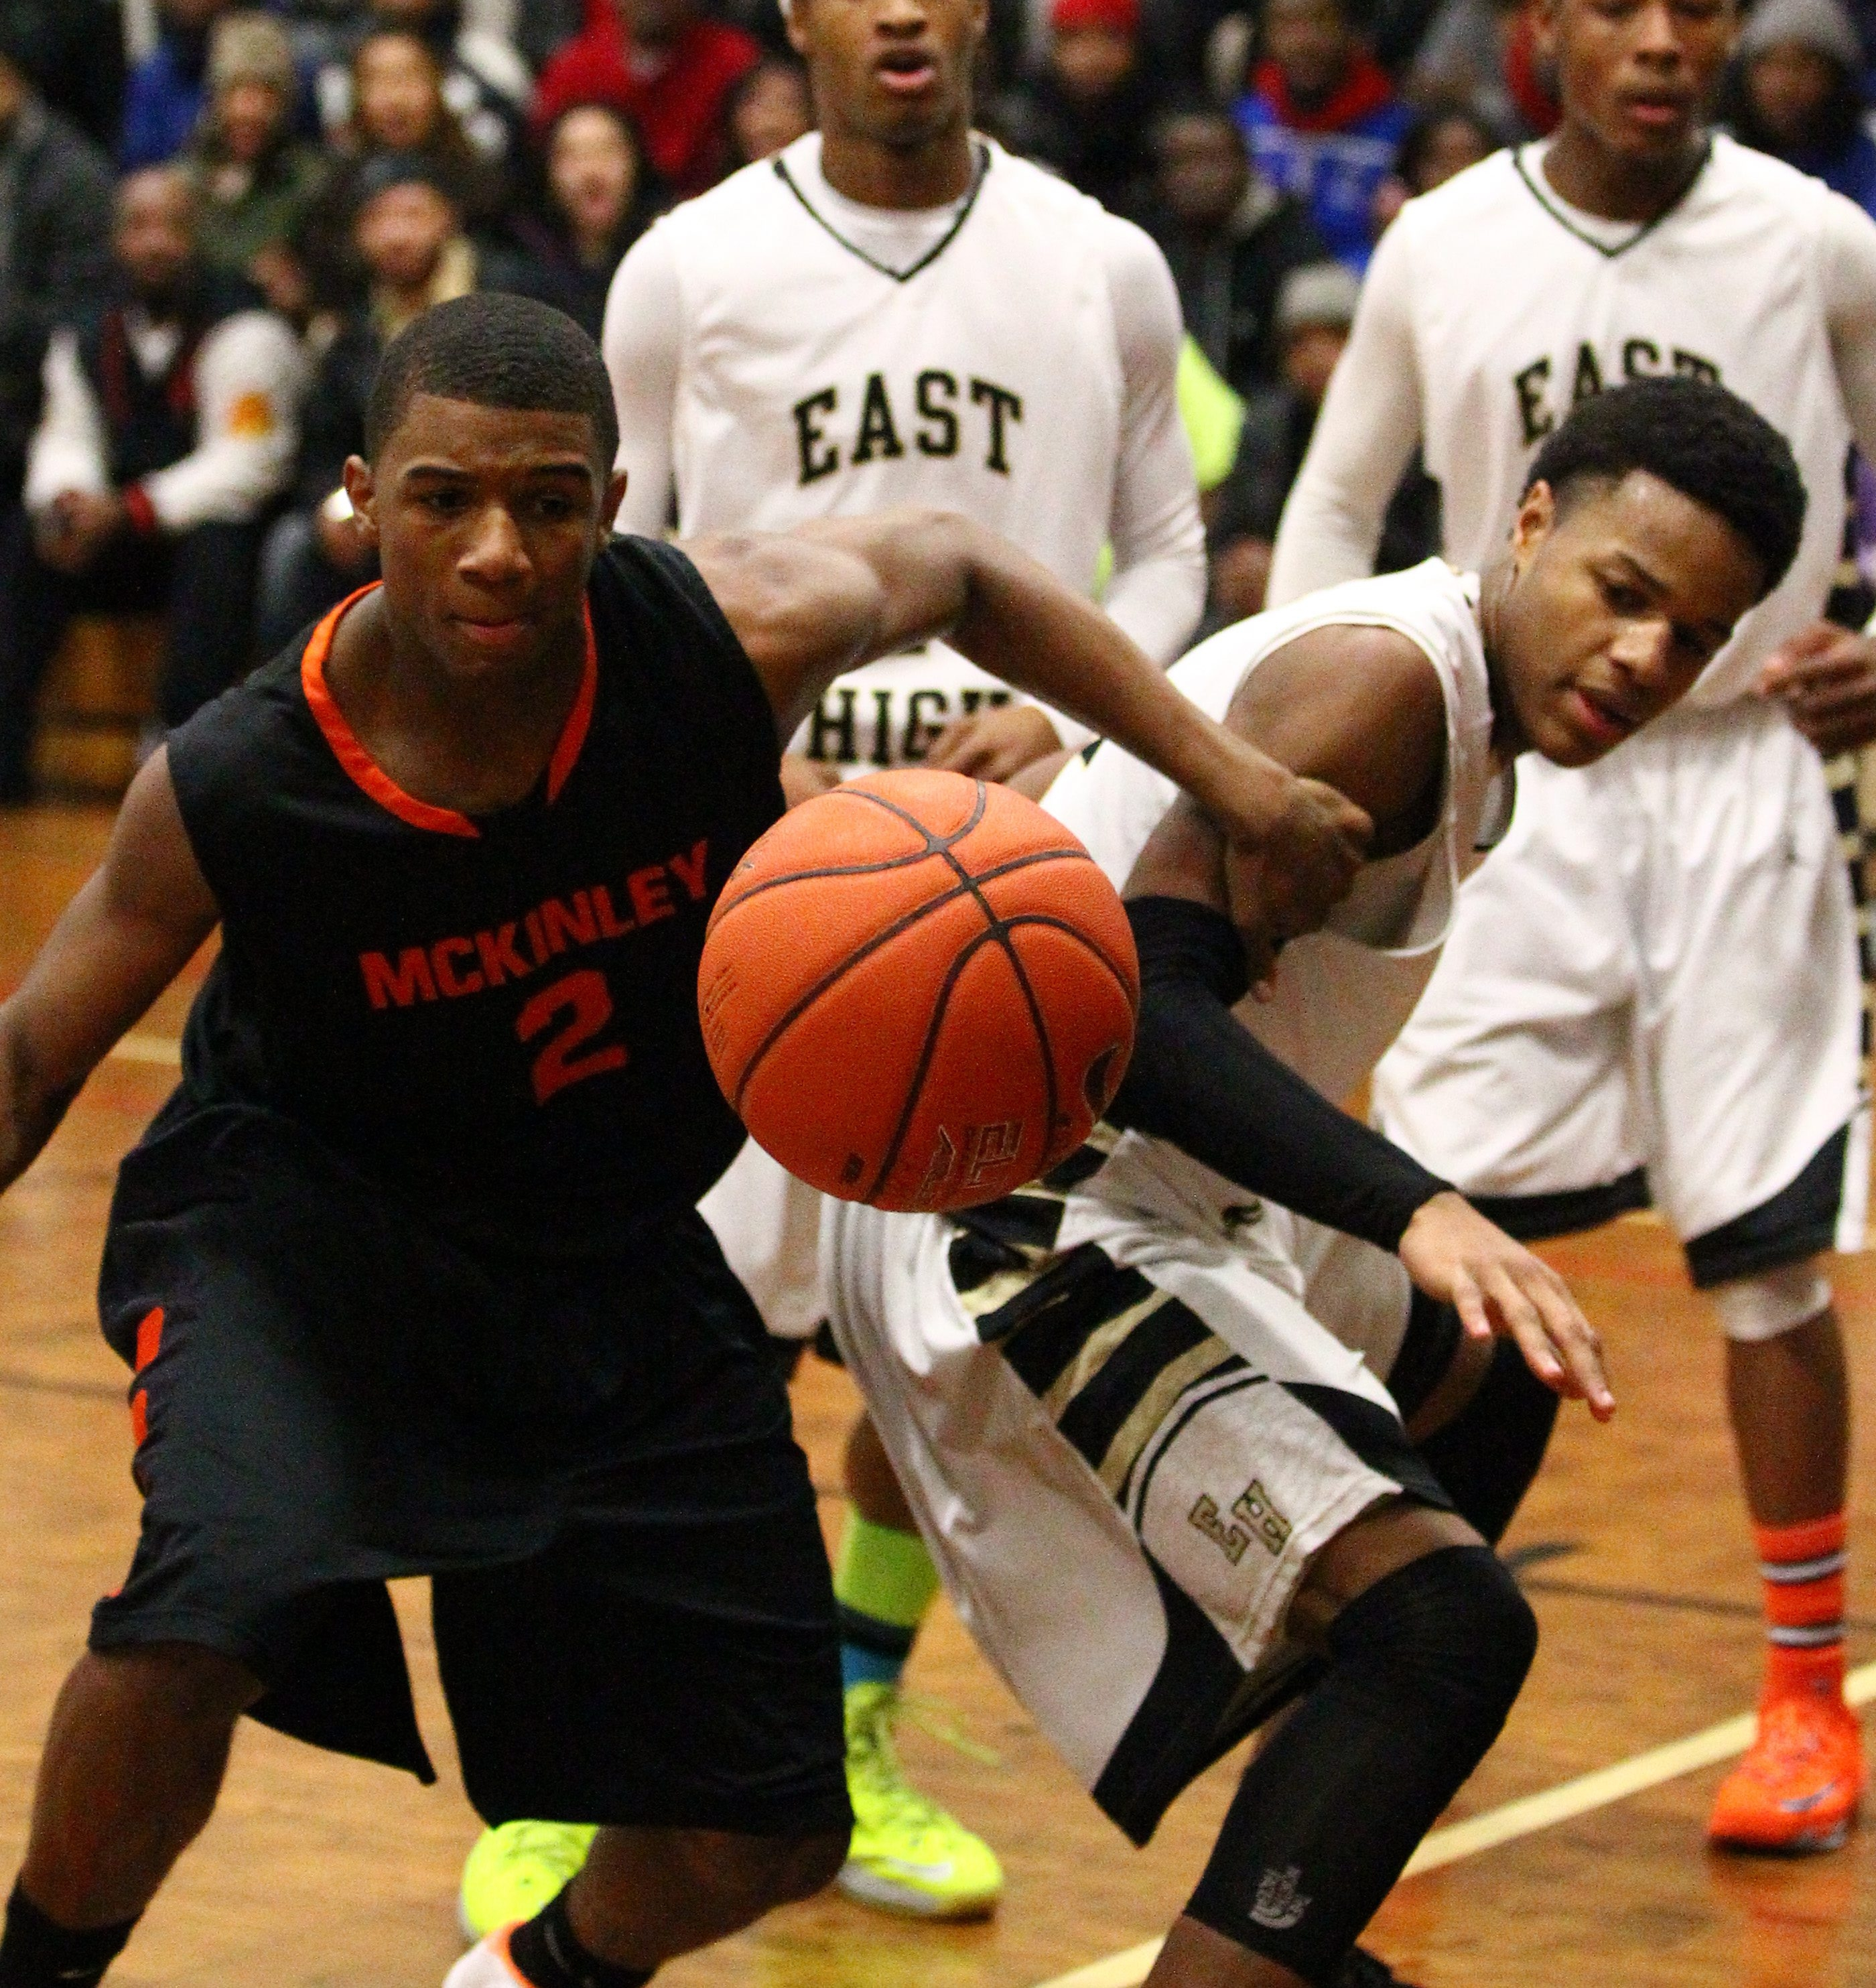 McKinley and Shaquan Jones, left, and East and Ricardo Humphrey are both among Western New York's top teams.